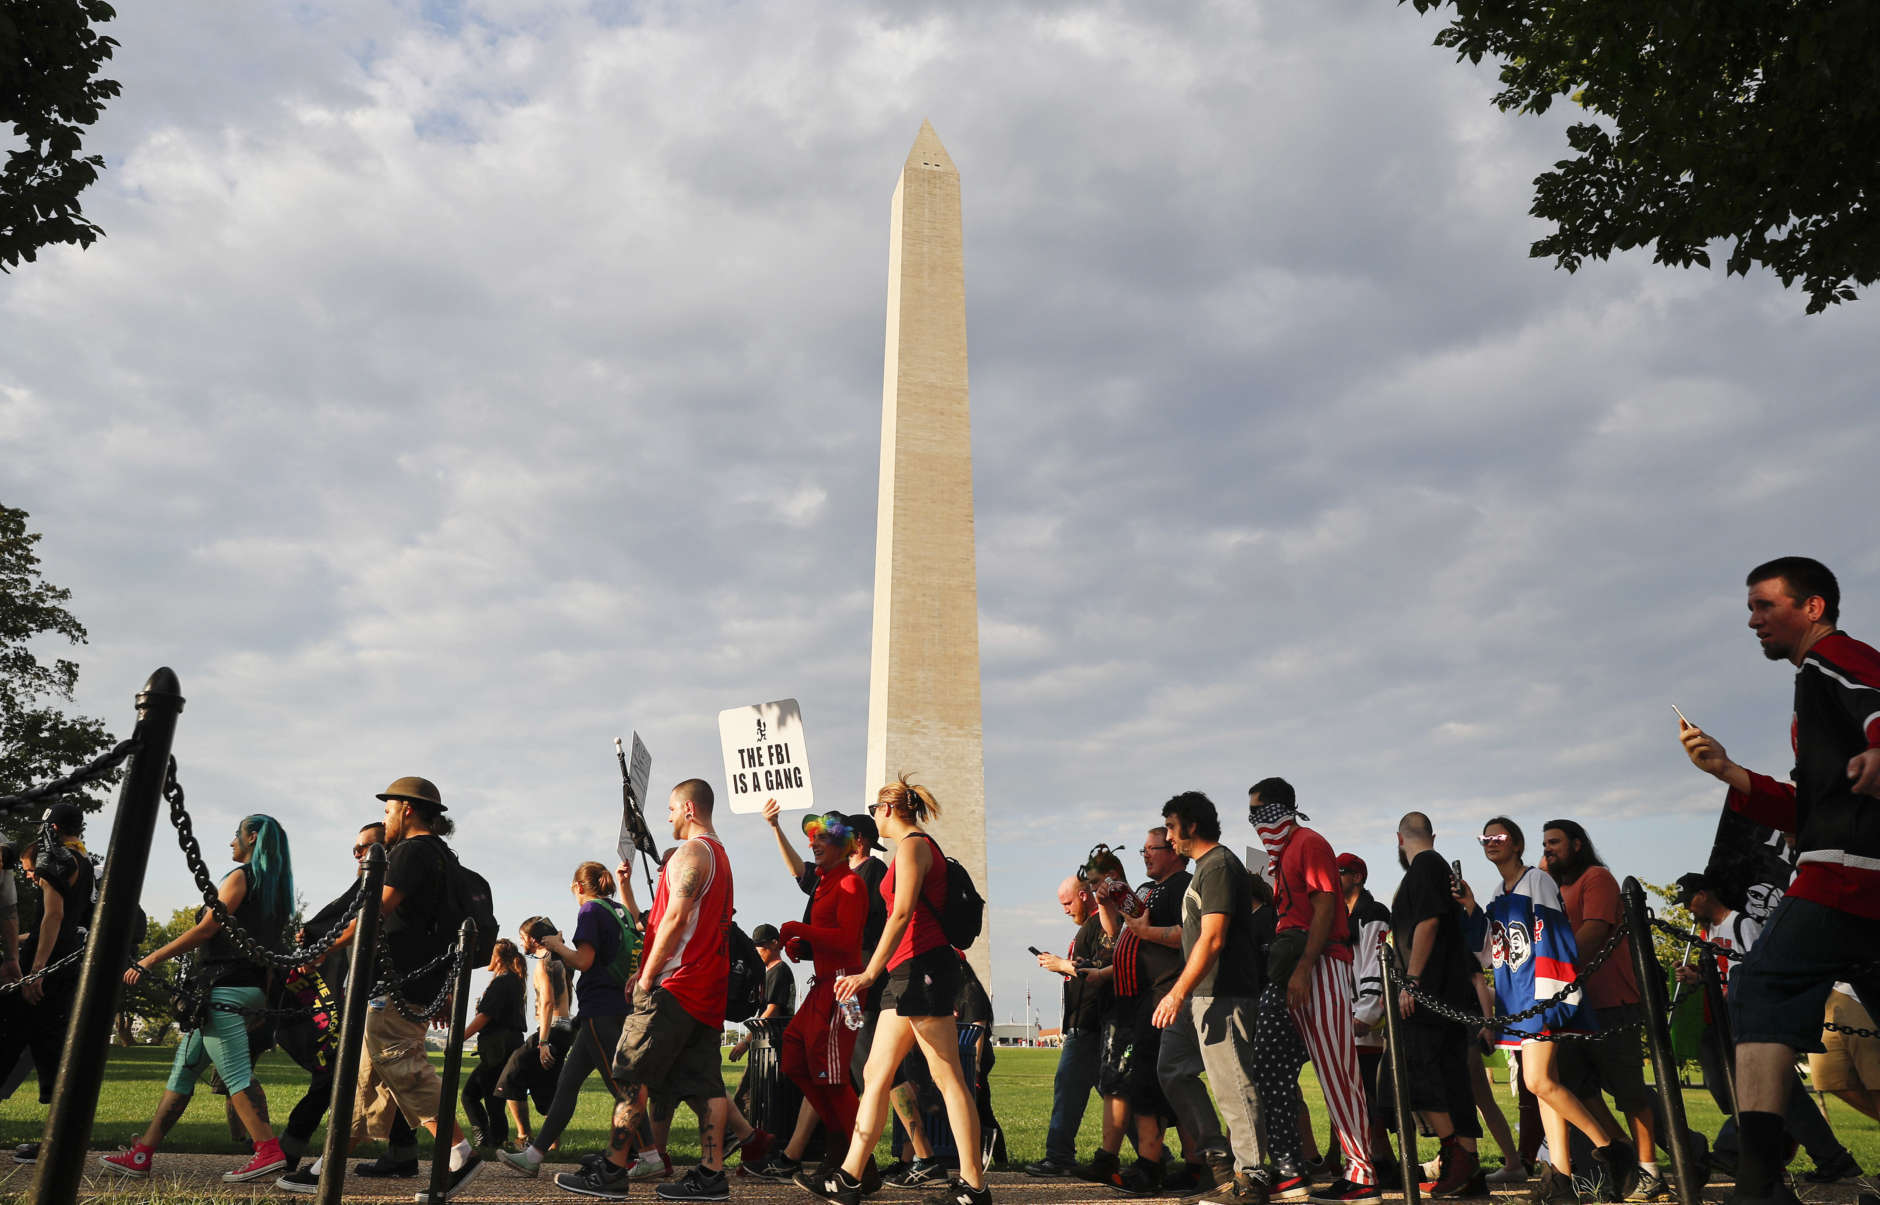 """Juggalos, as supporters of the rap group Insane Clown Posse are known, march past the Washington Monument as they head towards the Lincoln Memorial in Washington during a rally, Saturday, Sept. 16, 2017. The event was held to demand that the FBI rescind its classification of the juggalos as a """"loosely organized hybrid gang."""" (AP Photo/Pablo Martinez Monsivais)"""